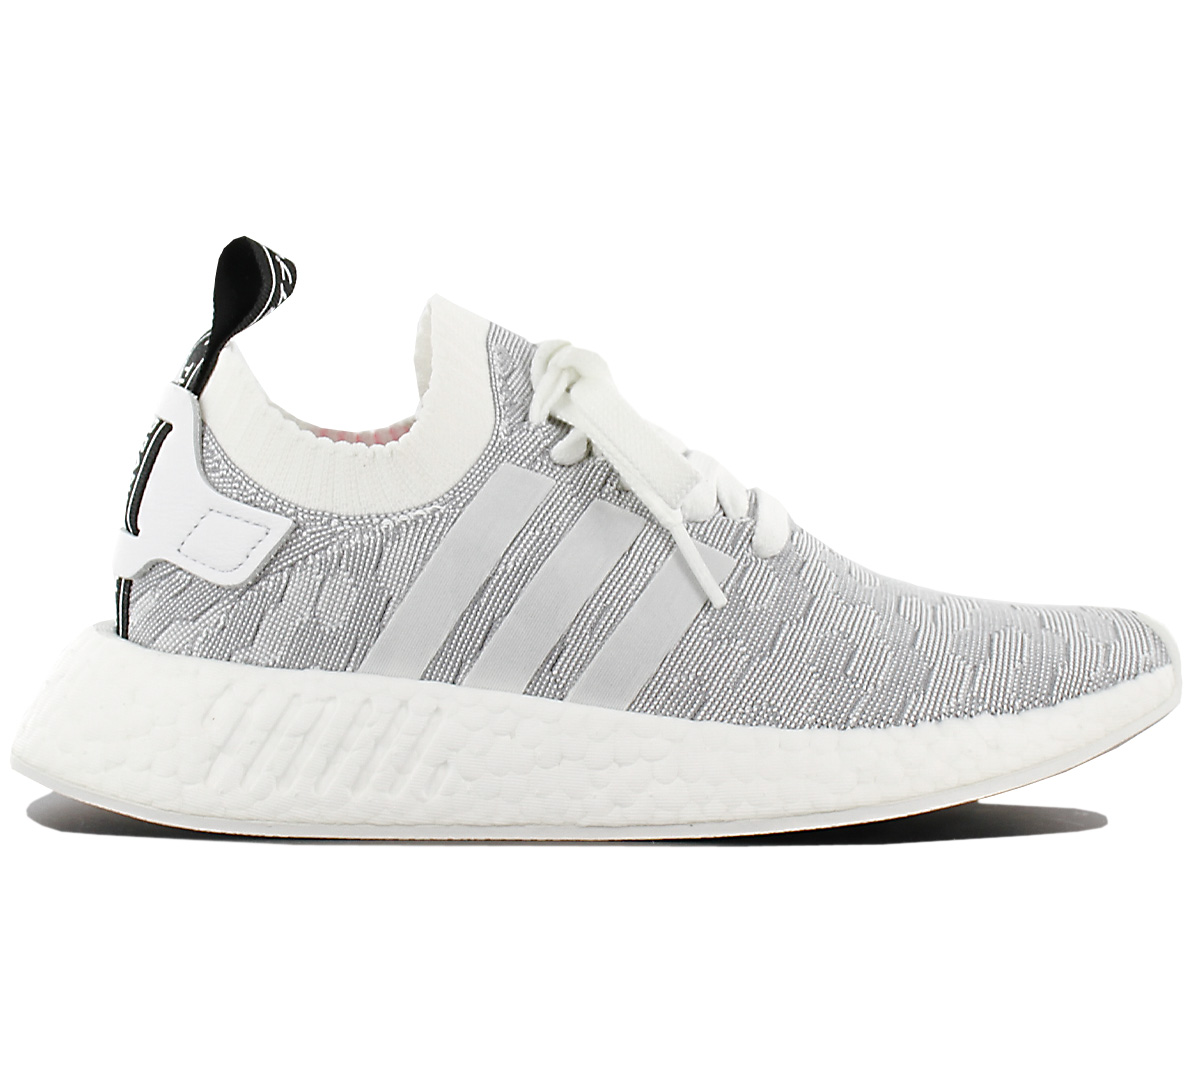 classic fit 1f258 cc93c Details about Adidas Originals Nmd R2 Pk W Primeknit Women's Trainers Shoes  R1 BY9520